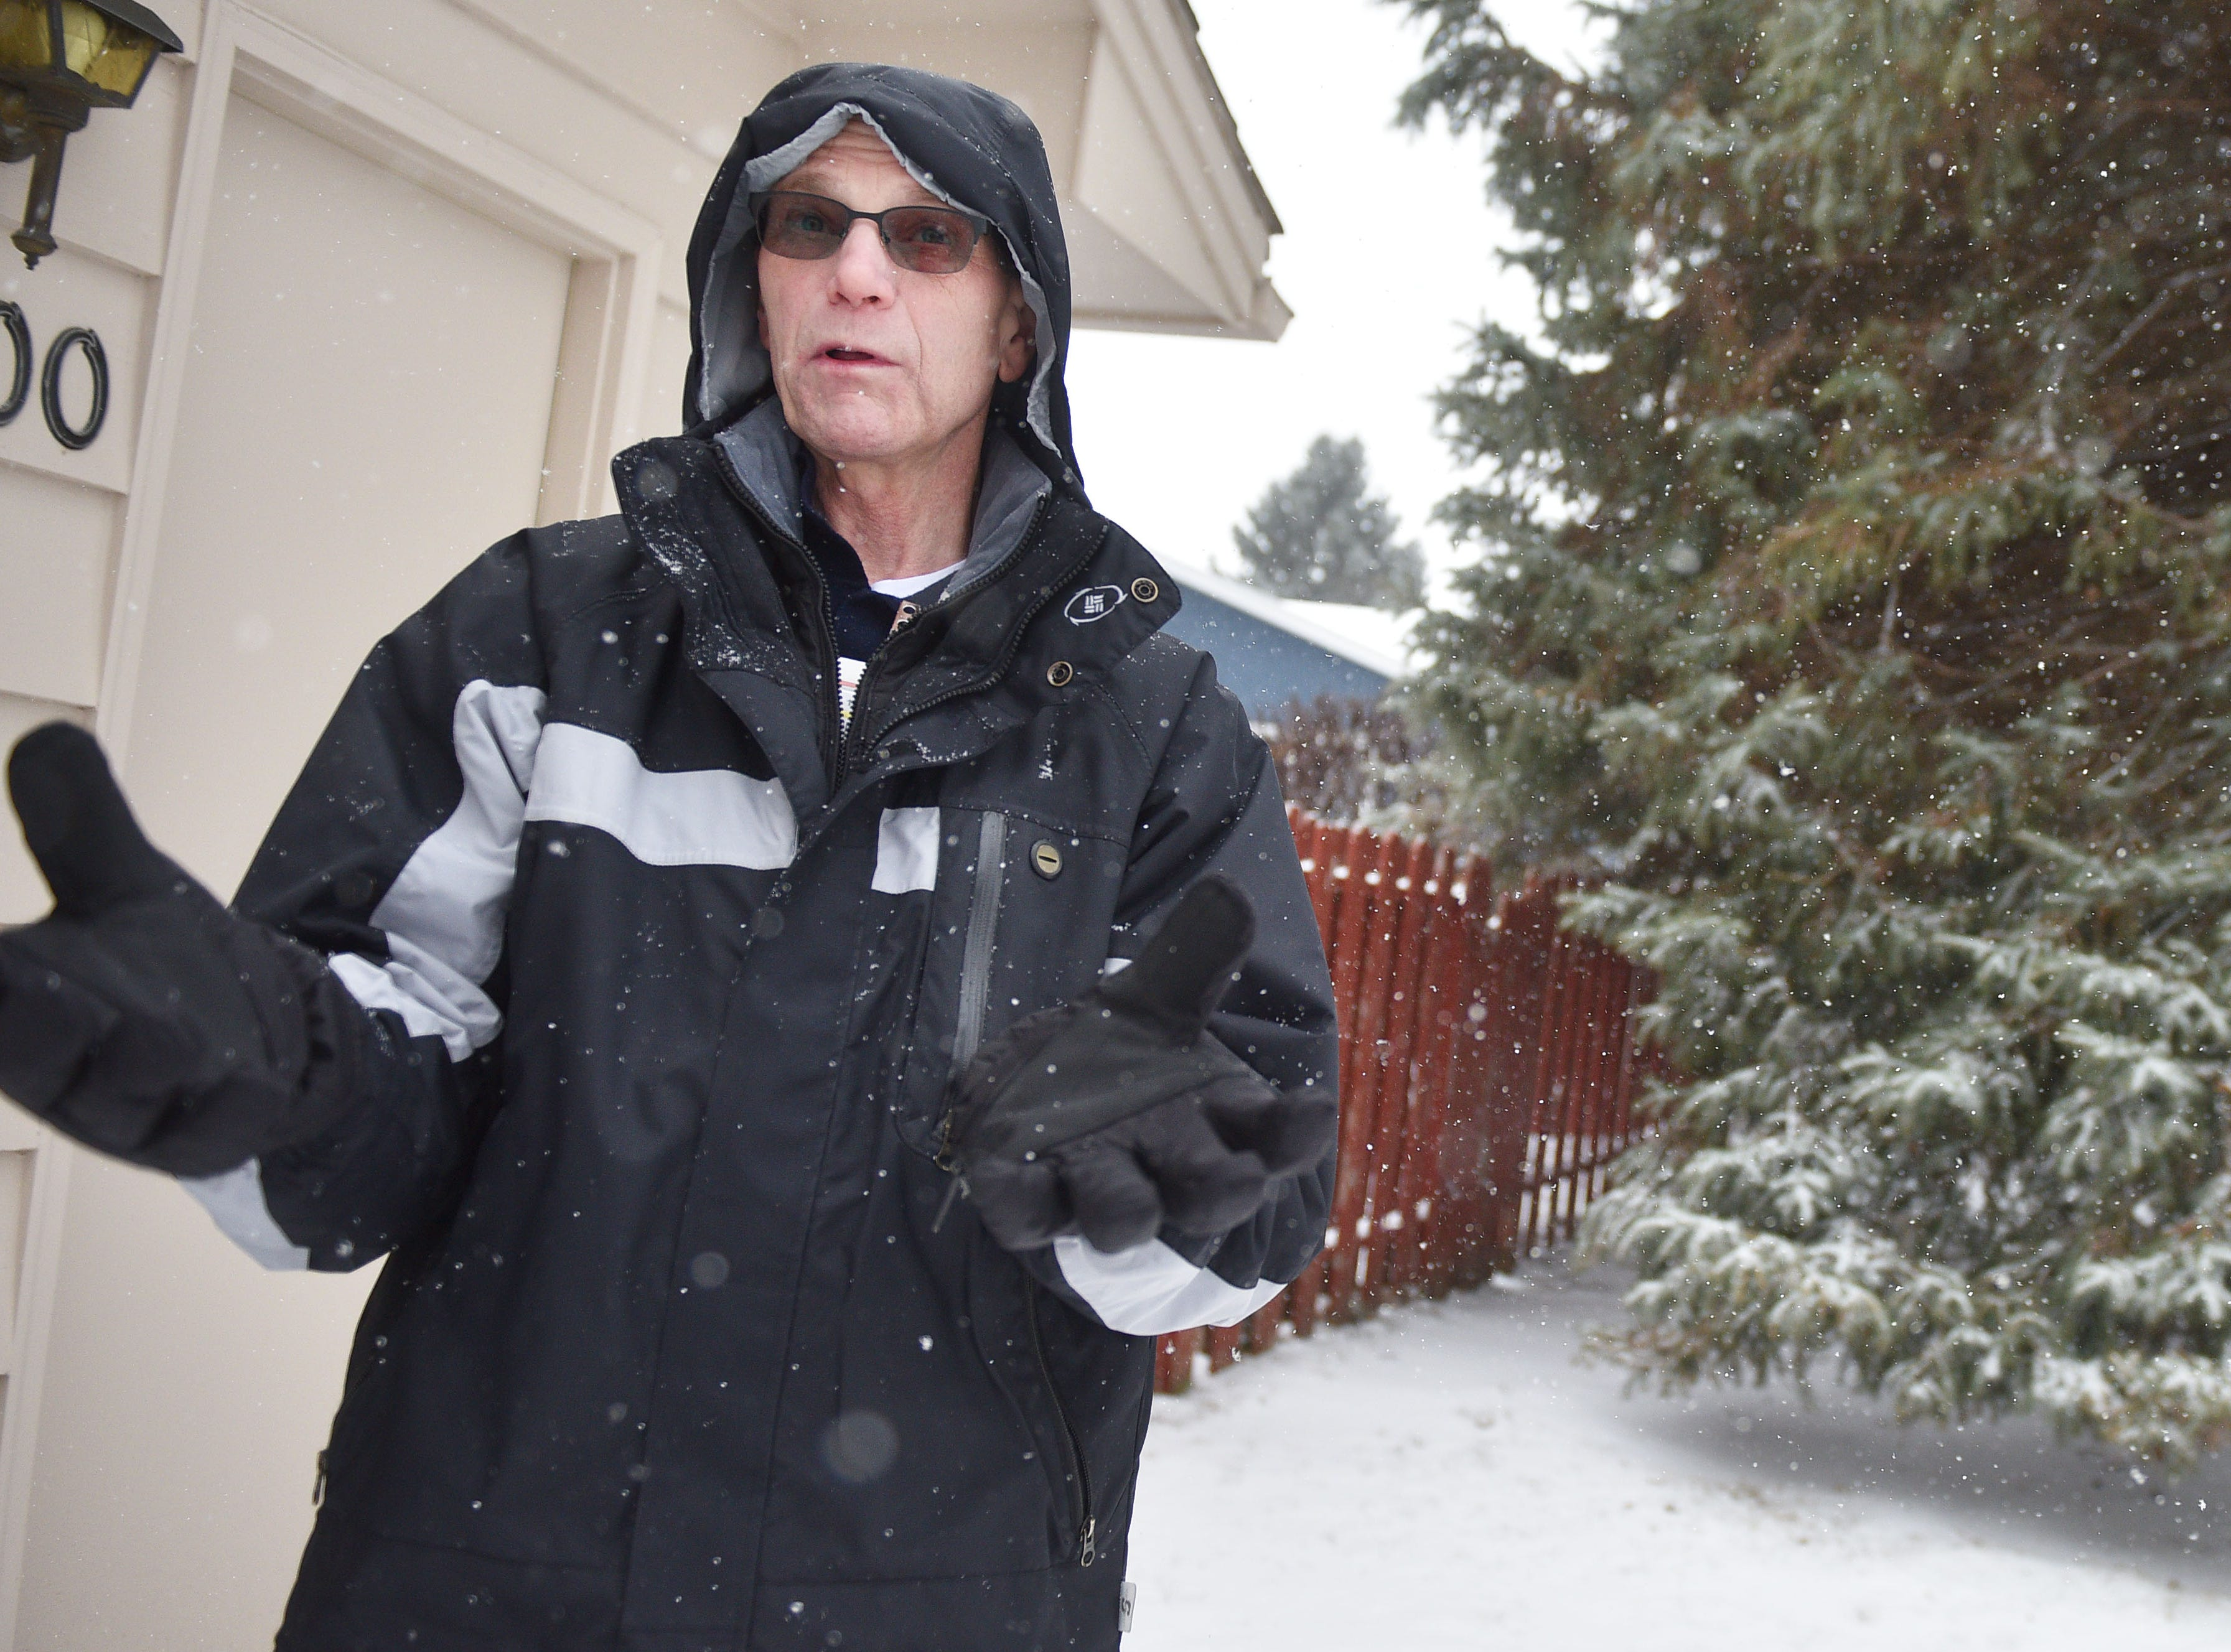 Michael Lynn talks about what he saw when he looked out his window after a plane crashed into his neighbor's yard at the 4200 block of south Birchwood Avenue Wednesday, Dec. 26, in Sioux Falls. Lynn said he saw a red and orange fire ball and noticed a plane wing.